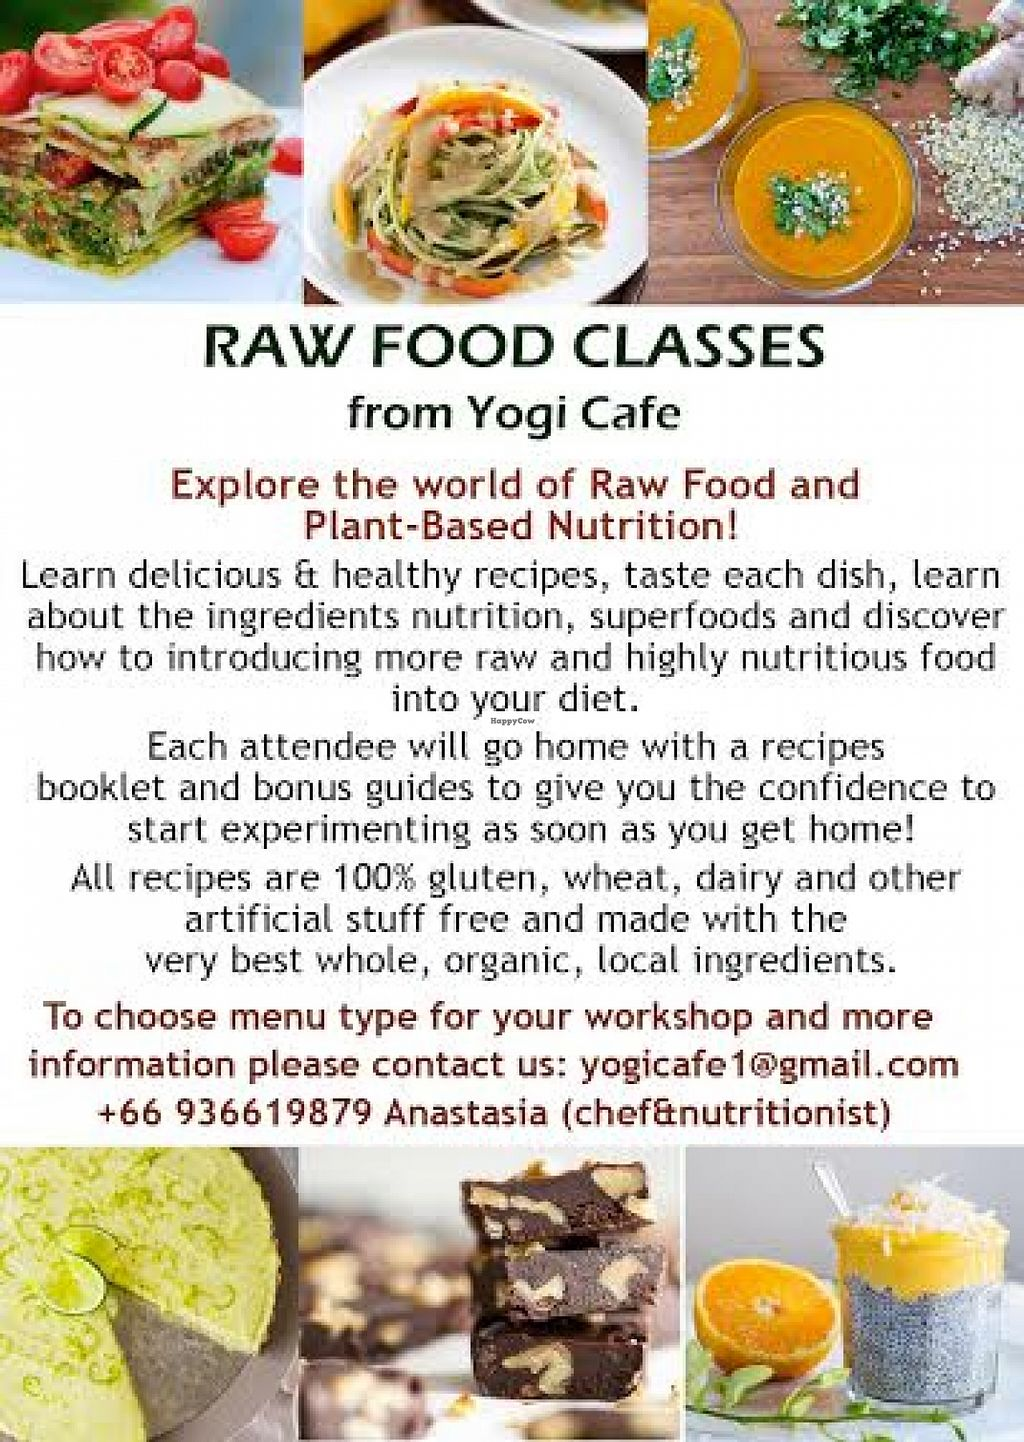 """Photo of Yogi Cafe  by <a href=""""/members/profile/yogi%20cafe"""">yogi cafe</a> <br/>workshop yogi cafe <br/> October 4, 2015  - <a href='/contact/abuse/image/63690/120141'>Report</a>"""